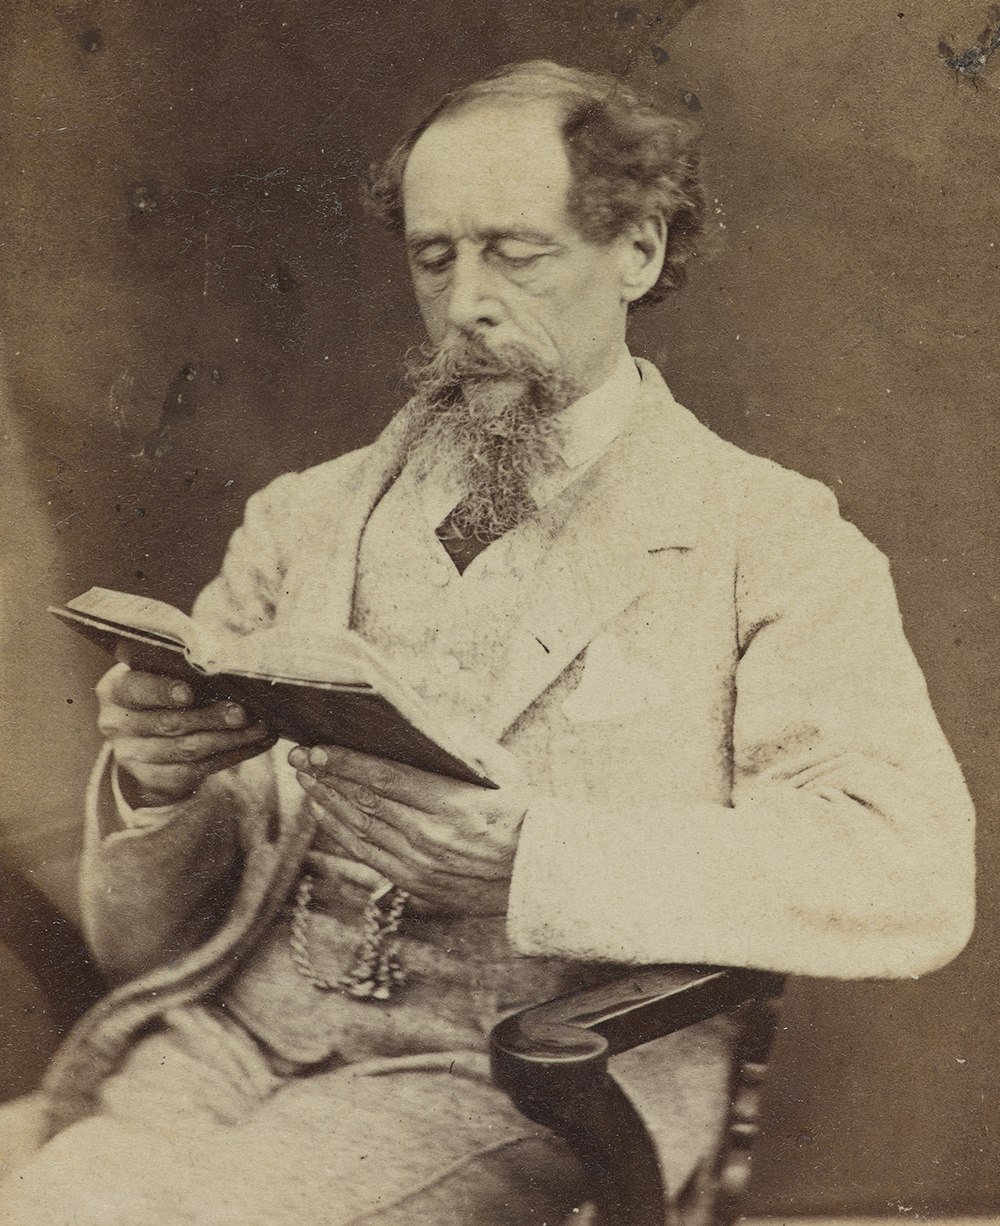 Charles Dickens reading a book